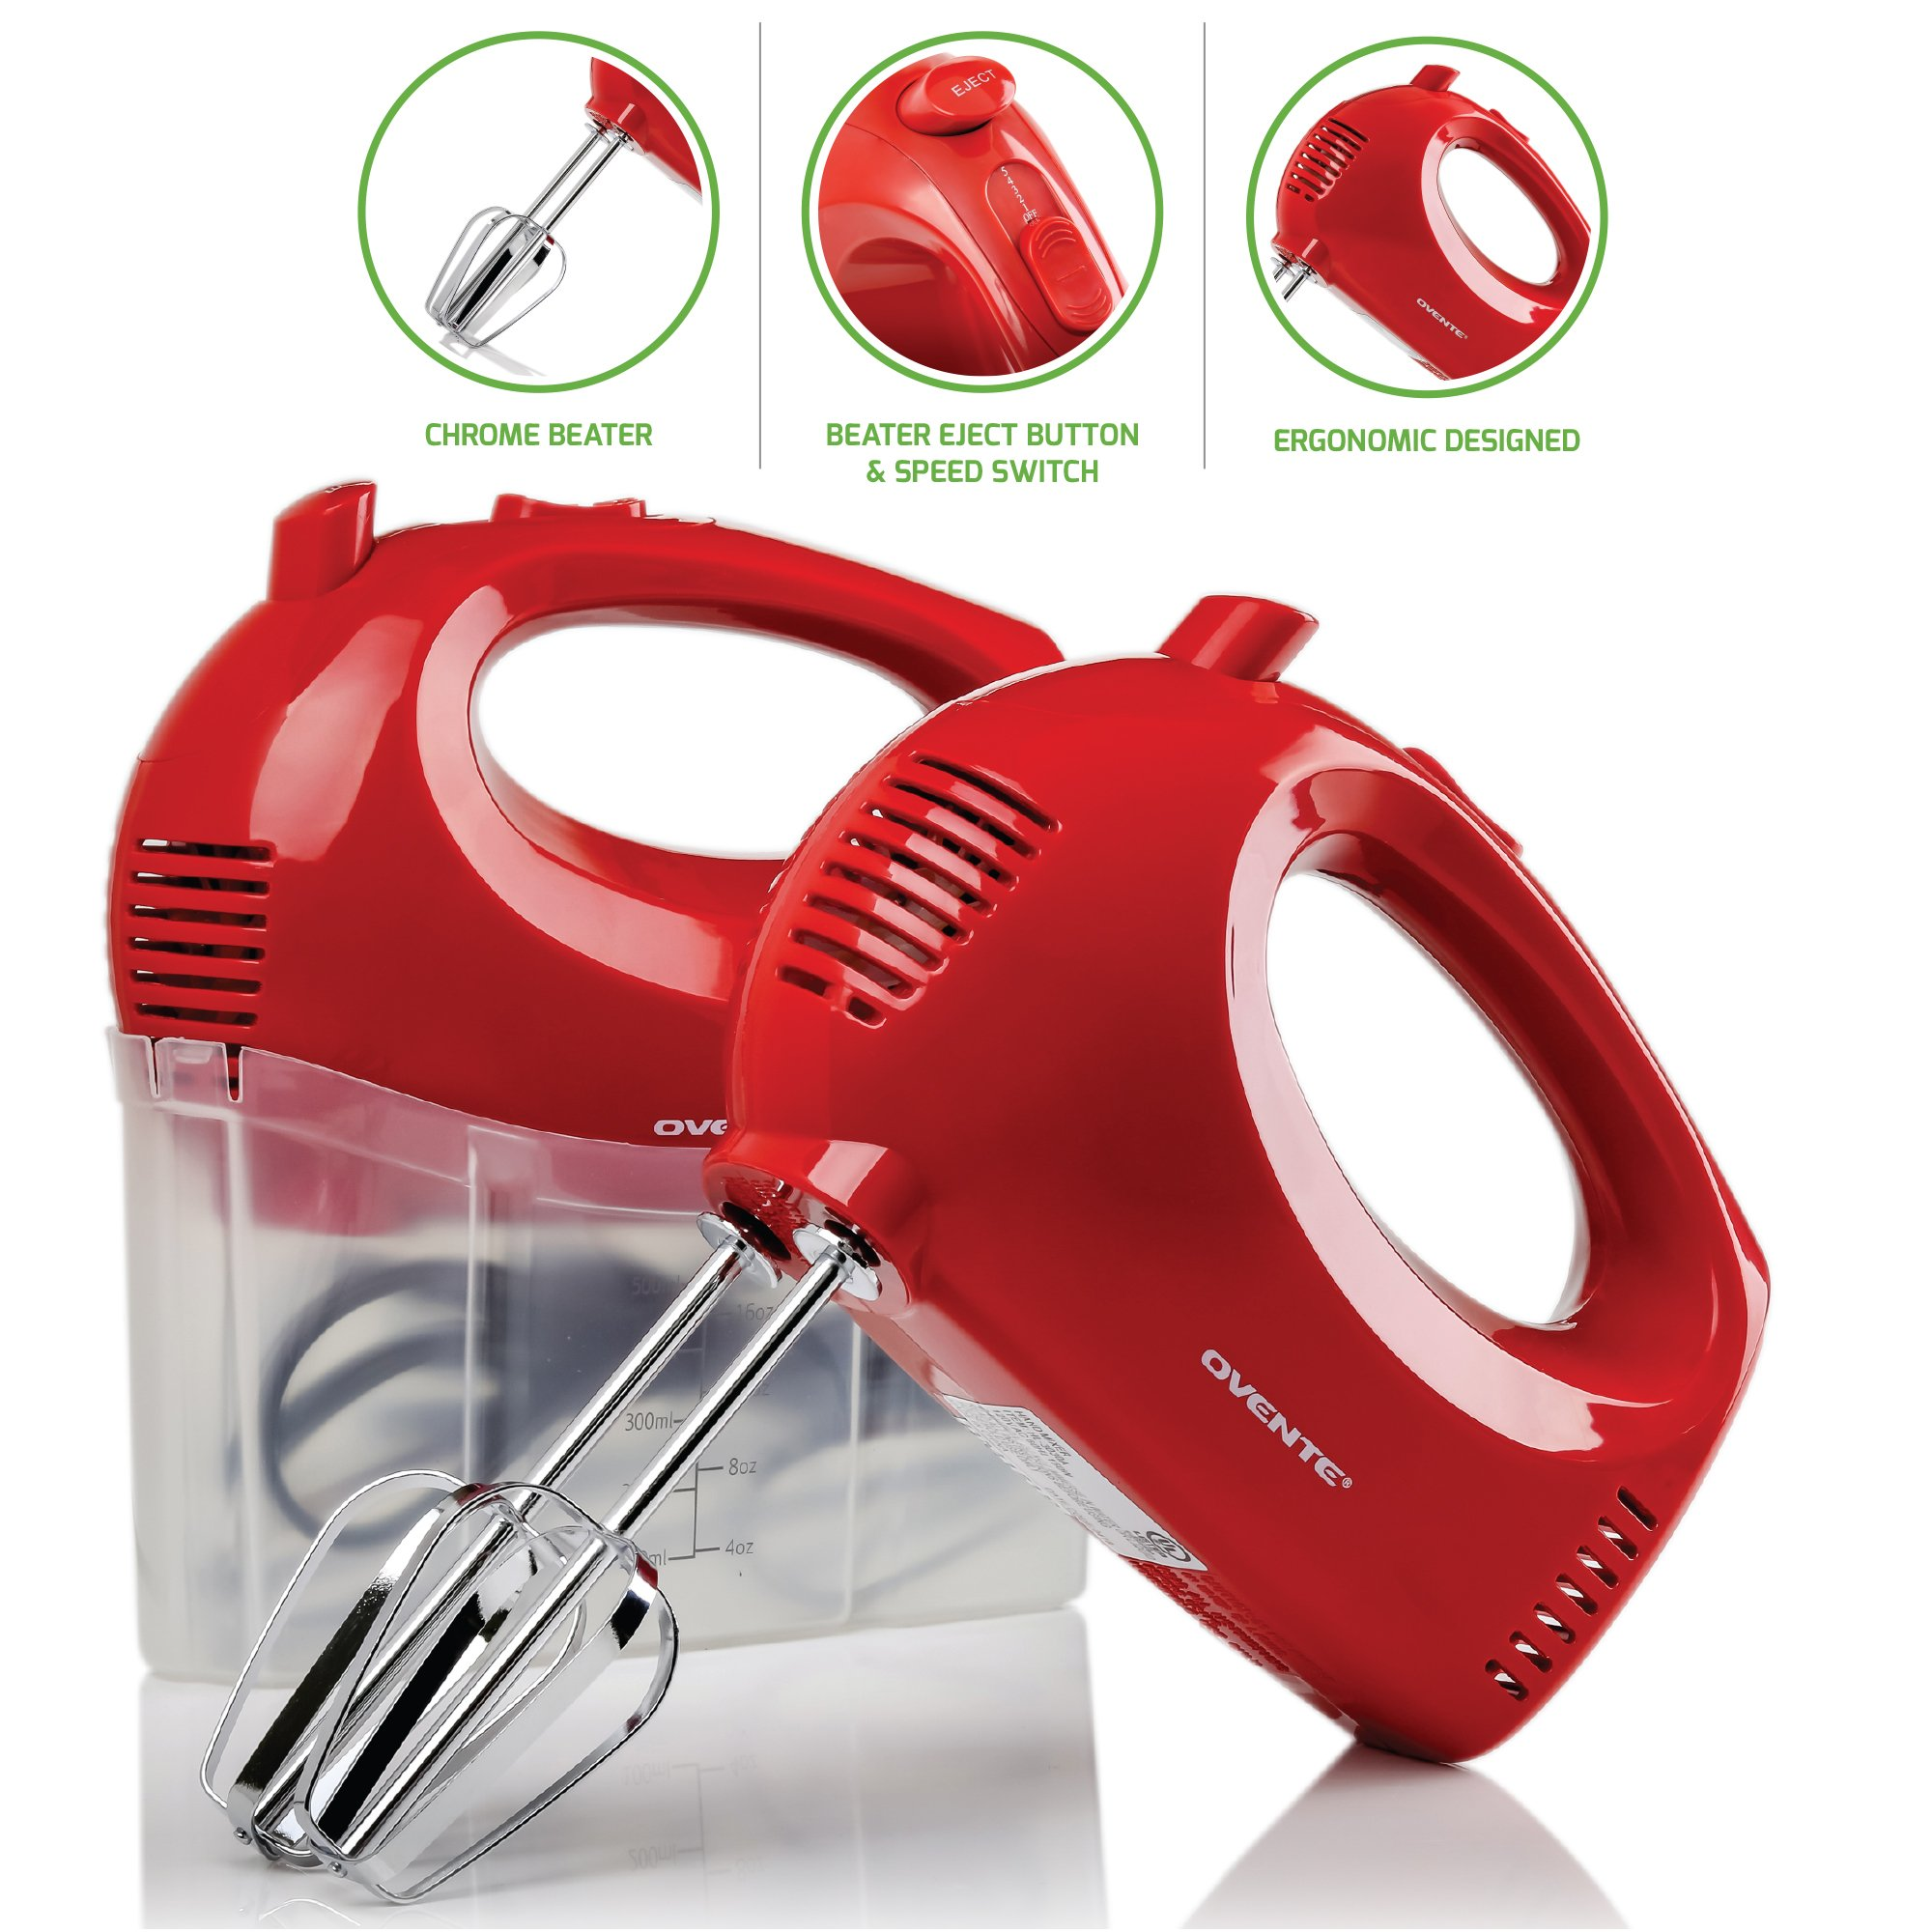 Ovente Electric Hand Mixer, 5 Mixing Speeds, 150W, 2 Stainless Steel Chrome Beaters & Snap-On Storage Case, Cool-Touch Handle, Red (HM151R) by Ovente